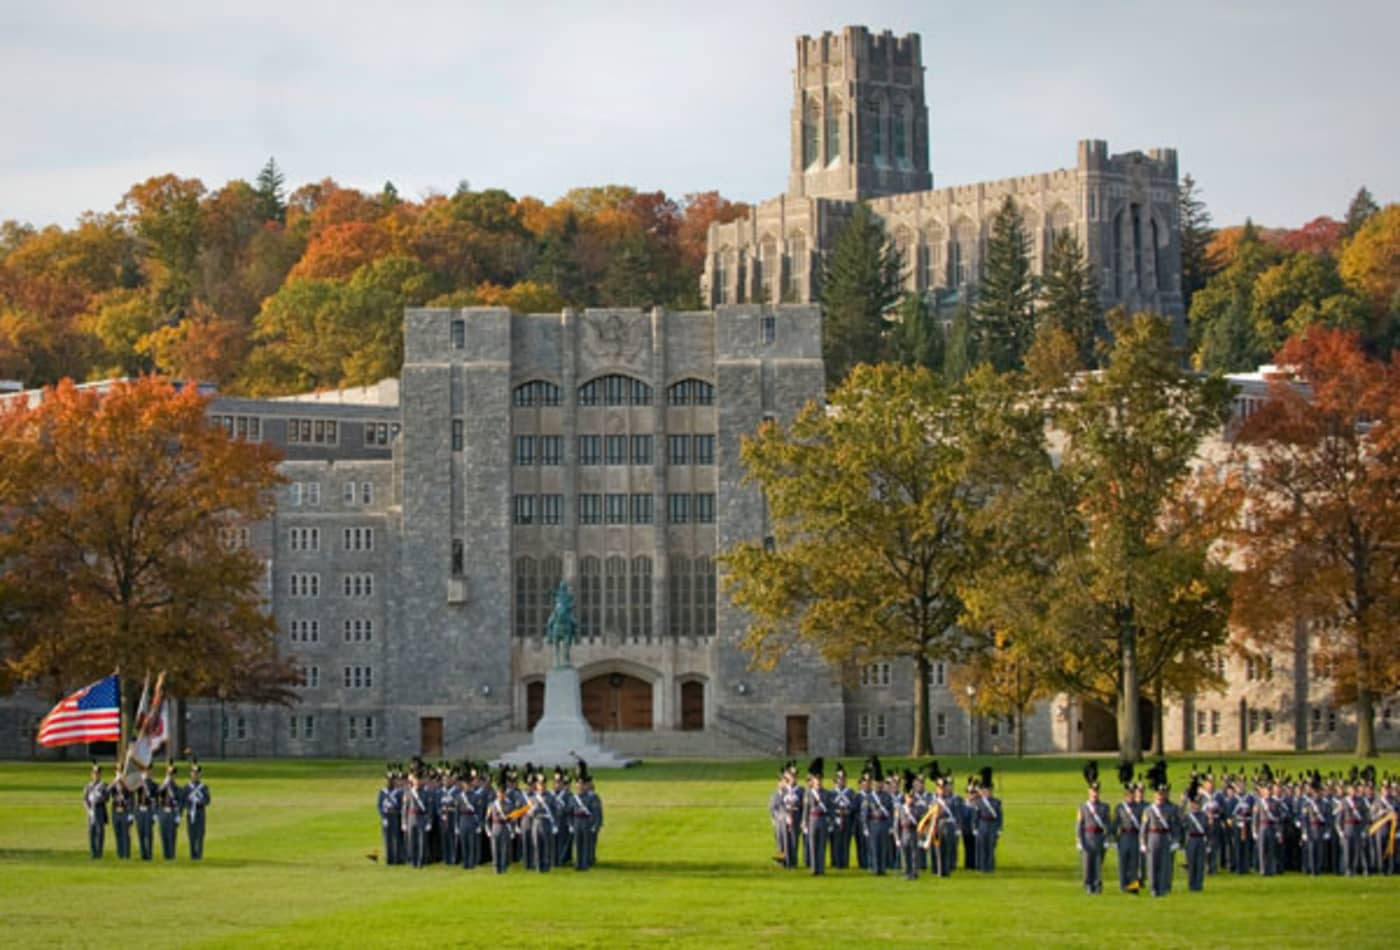 United-States-Military-Academy-Colleges-Highest-Paychecks-2012-CNBC.jpg